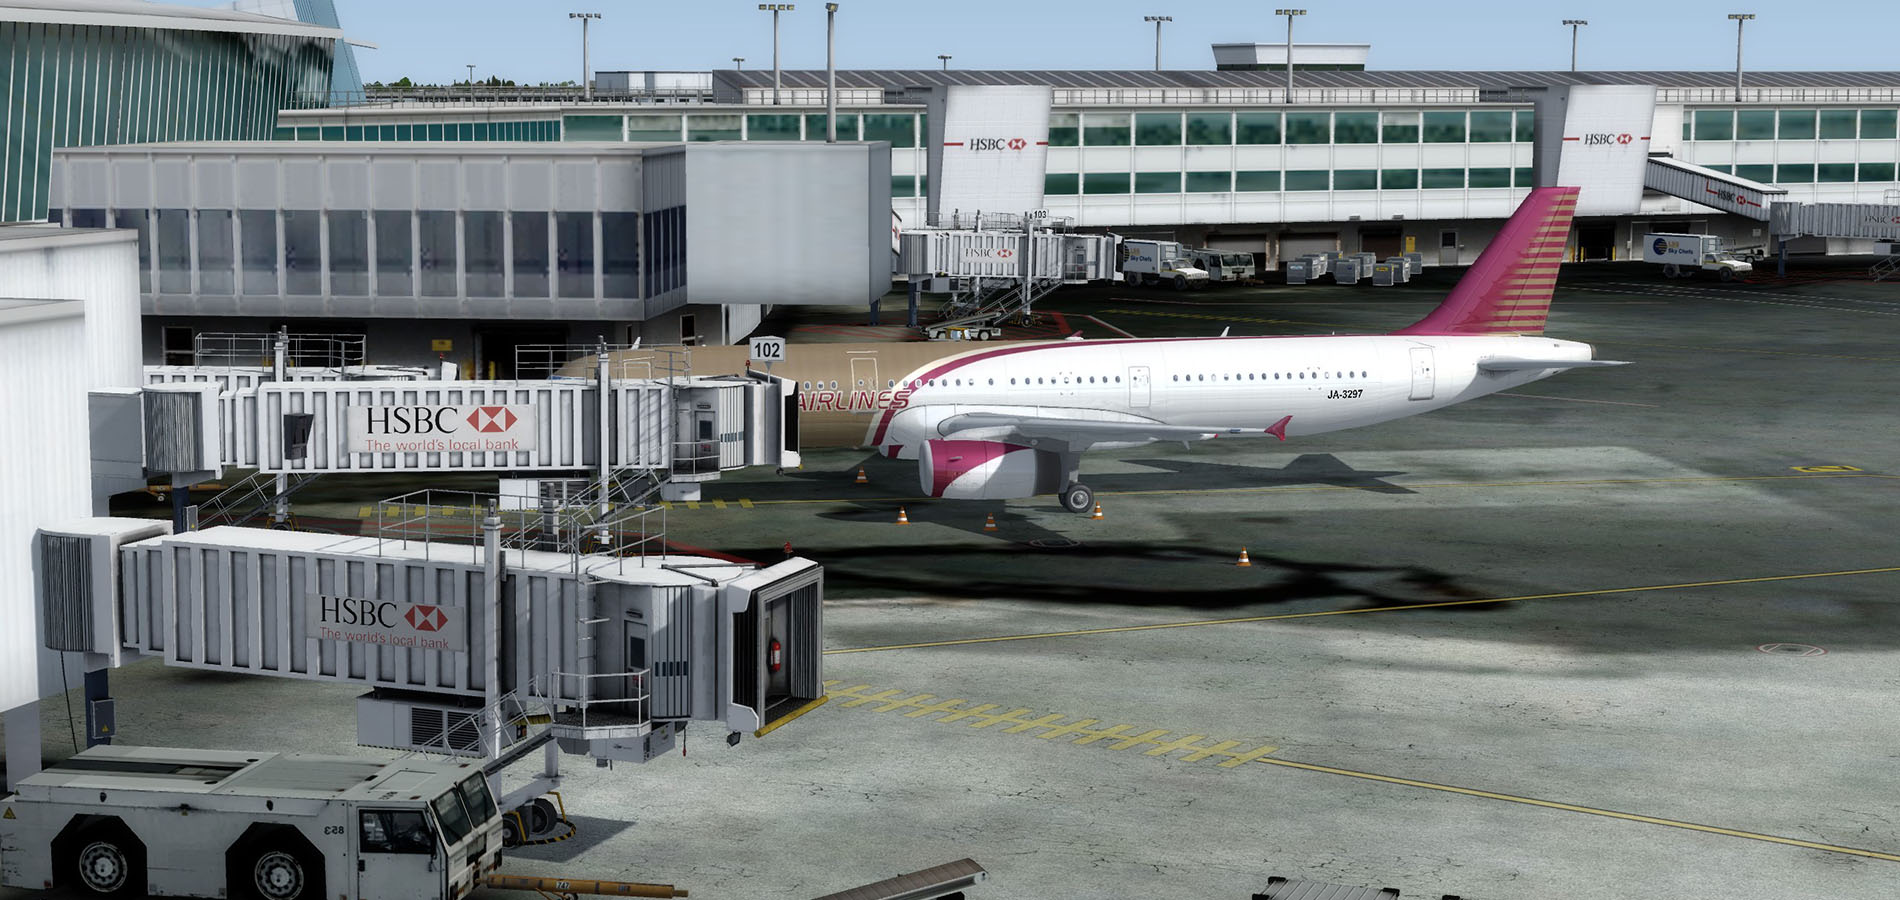 FSDREAMTEAM - GSX LEVEL 2 EXPANSION FSX P3D